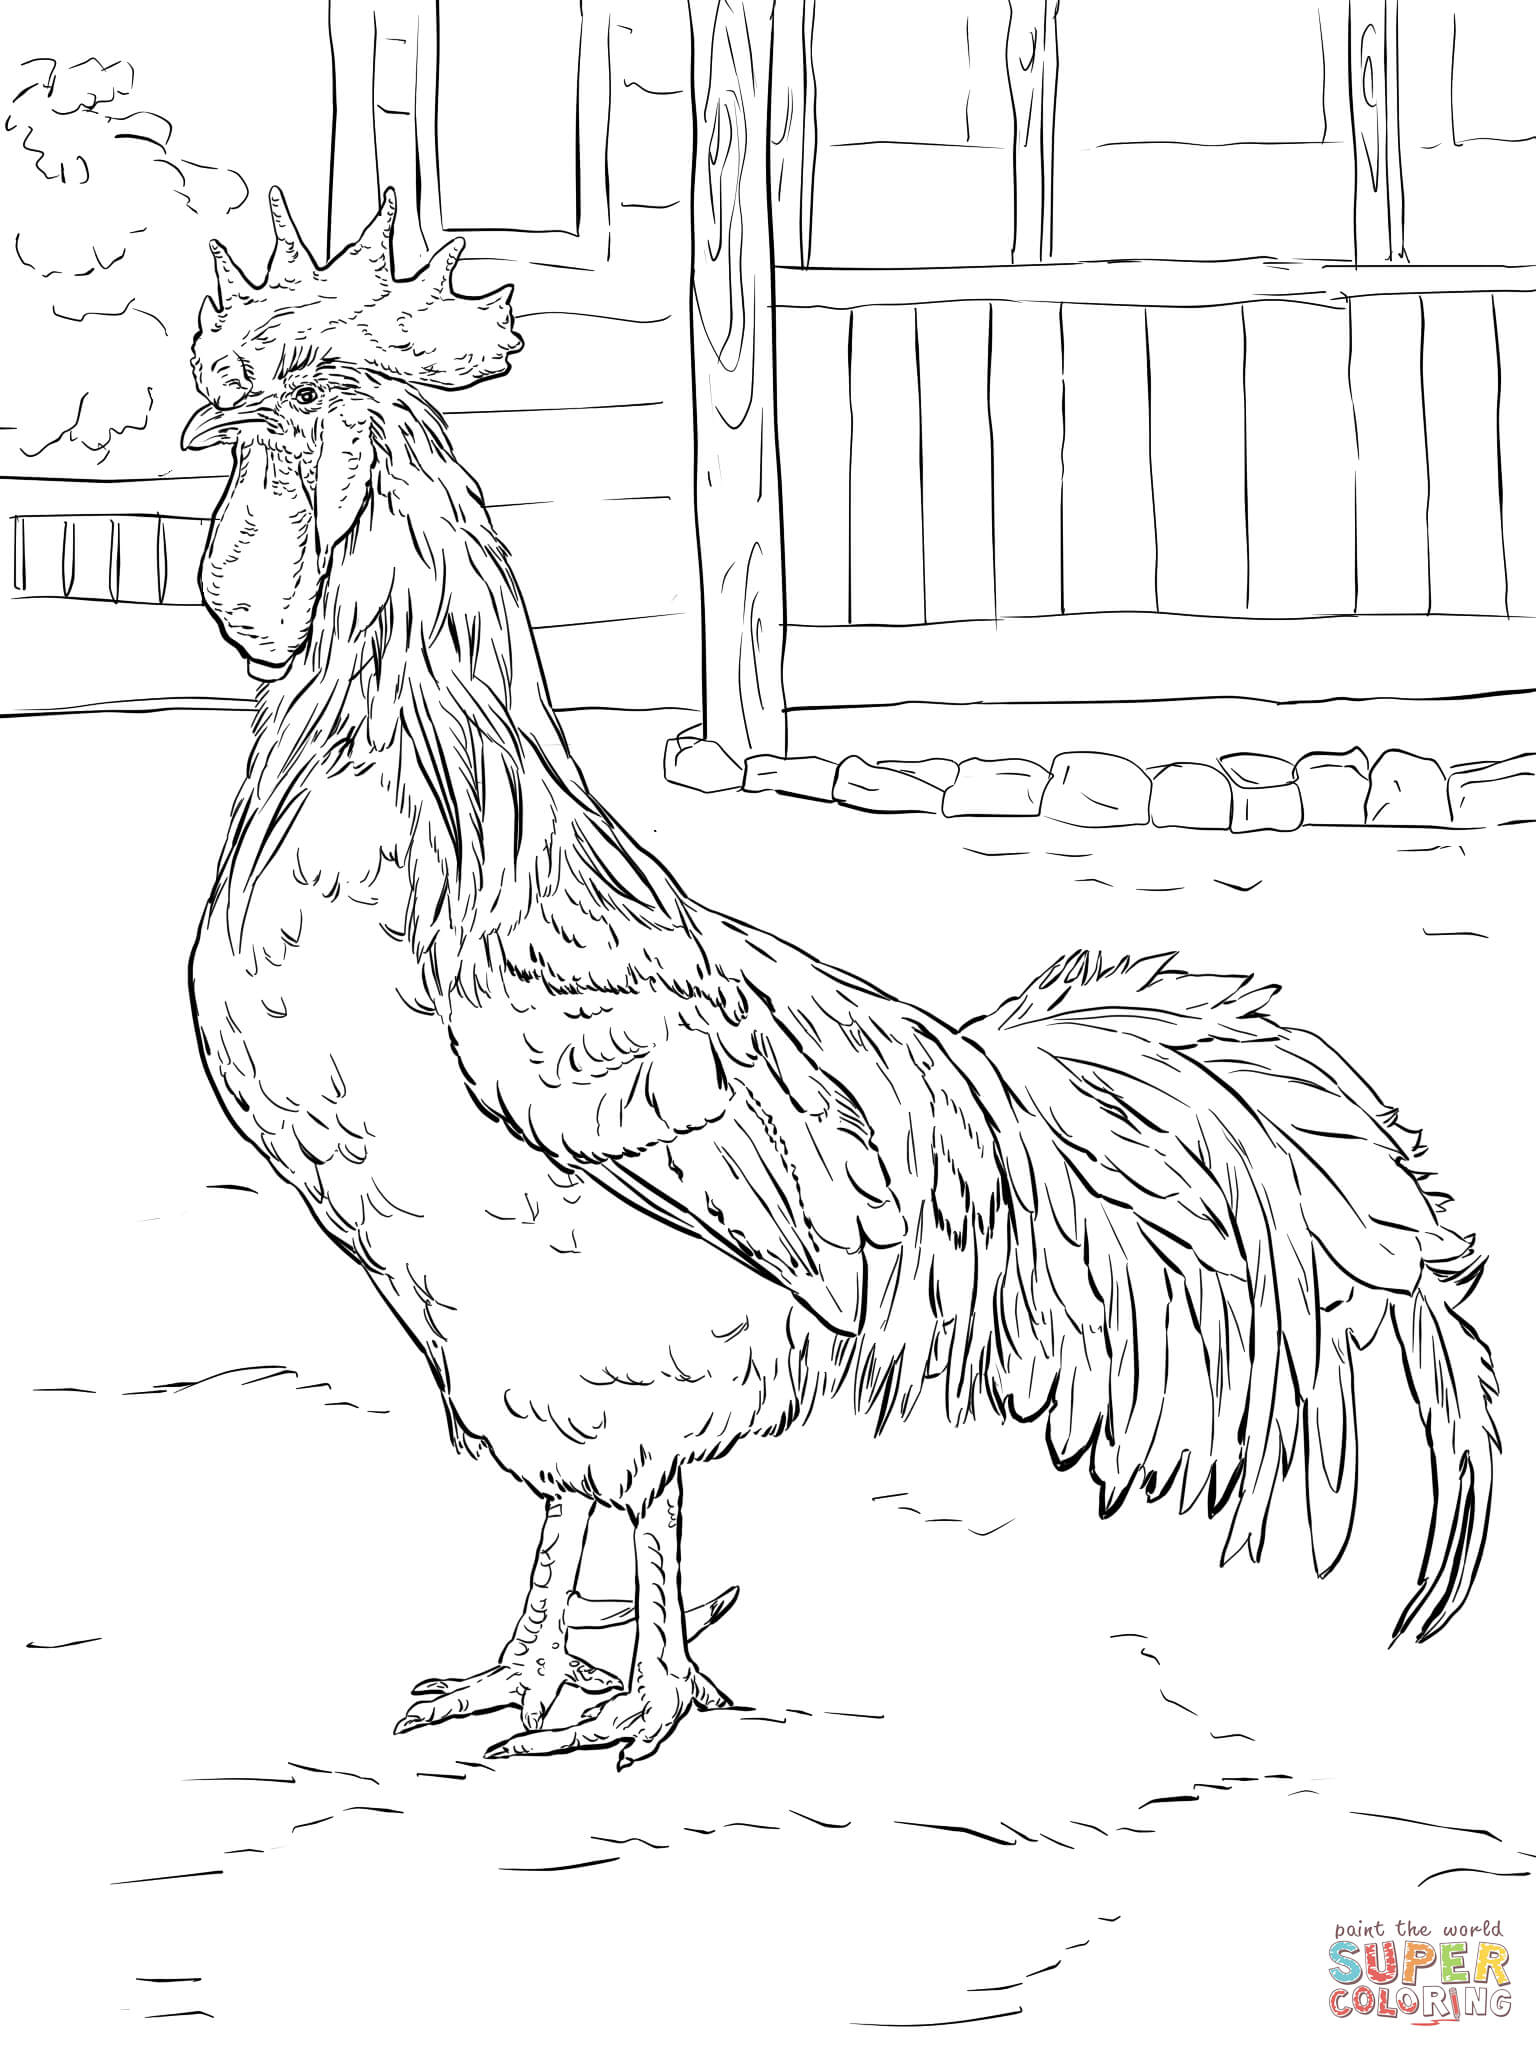 Brown Leghorn Rooster Coloring Page | Free Printable Coloring Pages - Free Printable Pictures Of Roosters